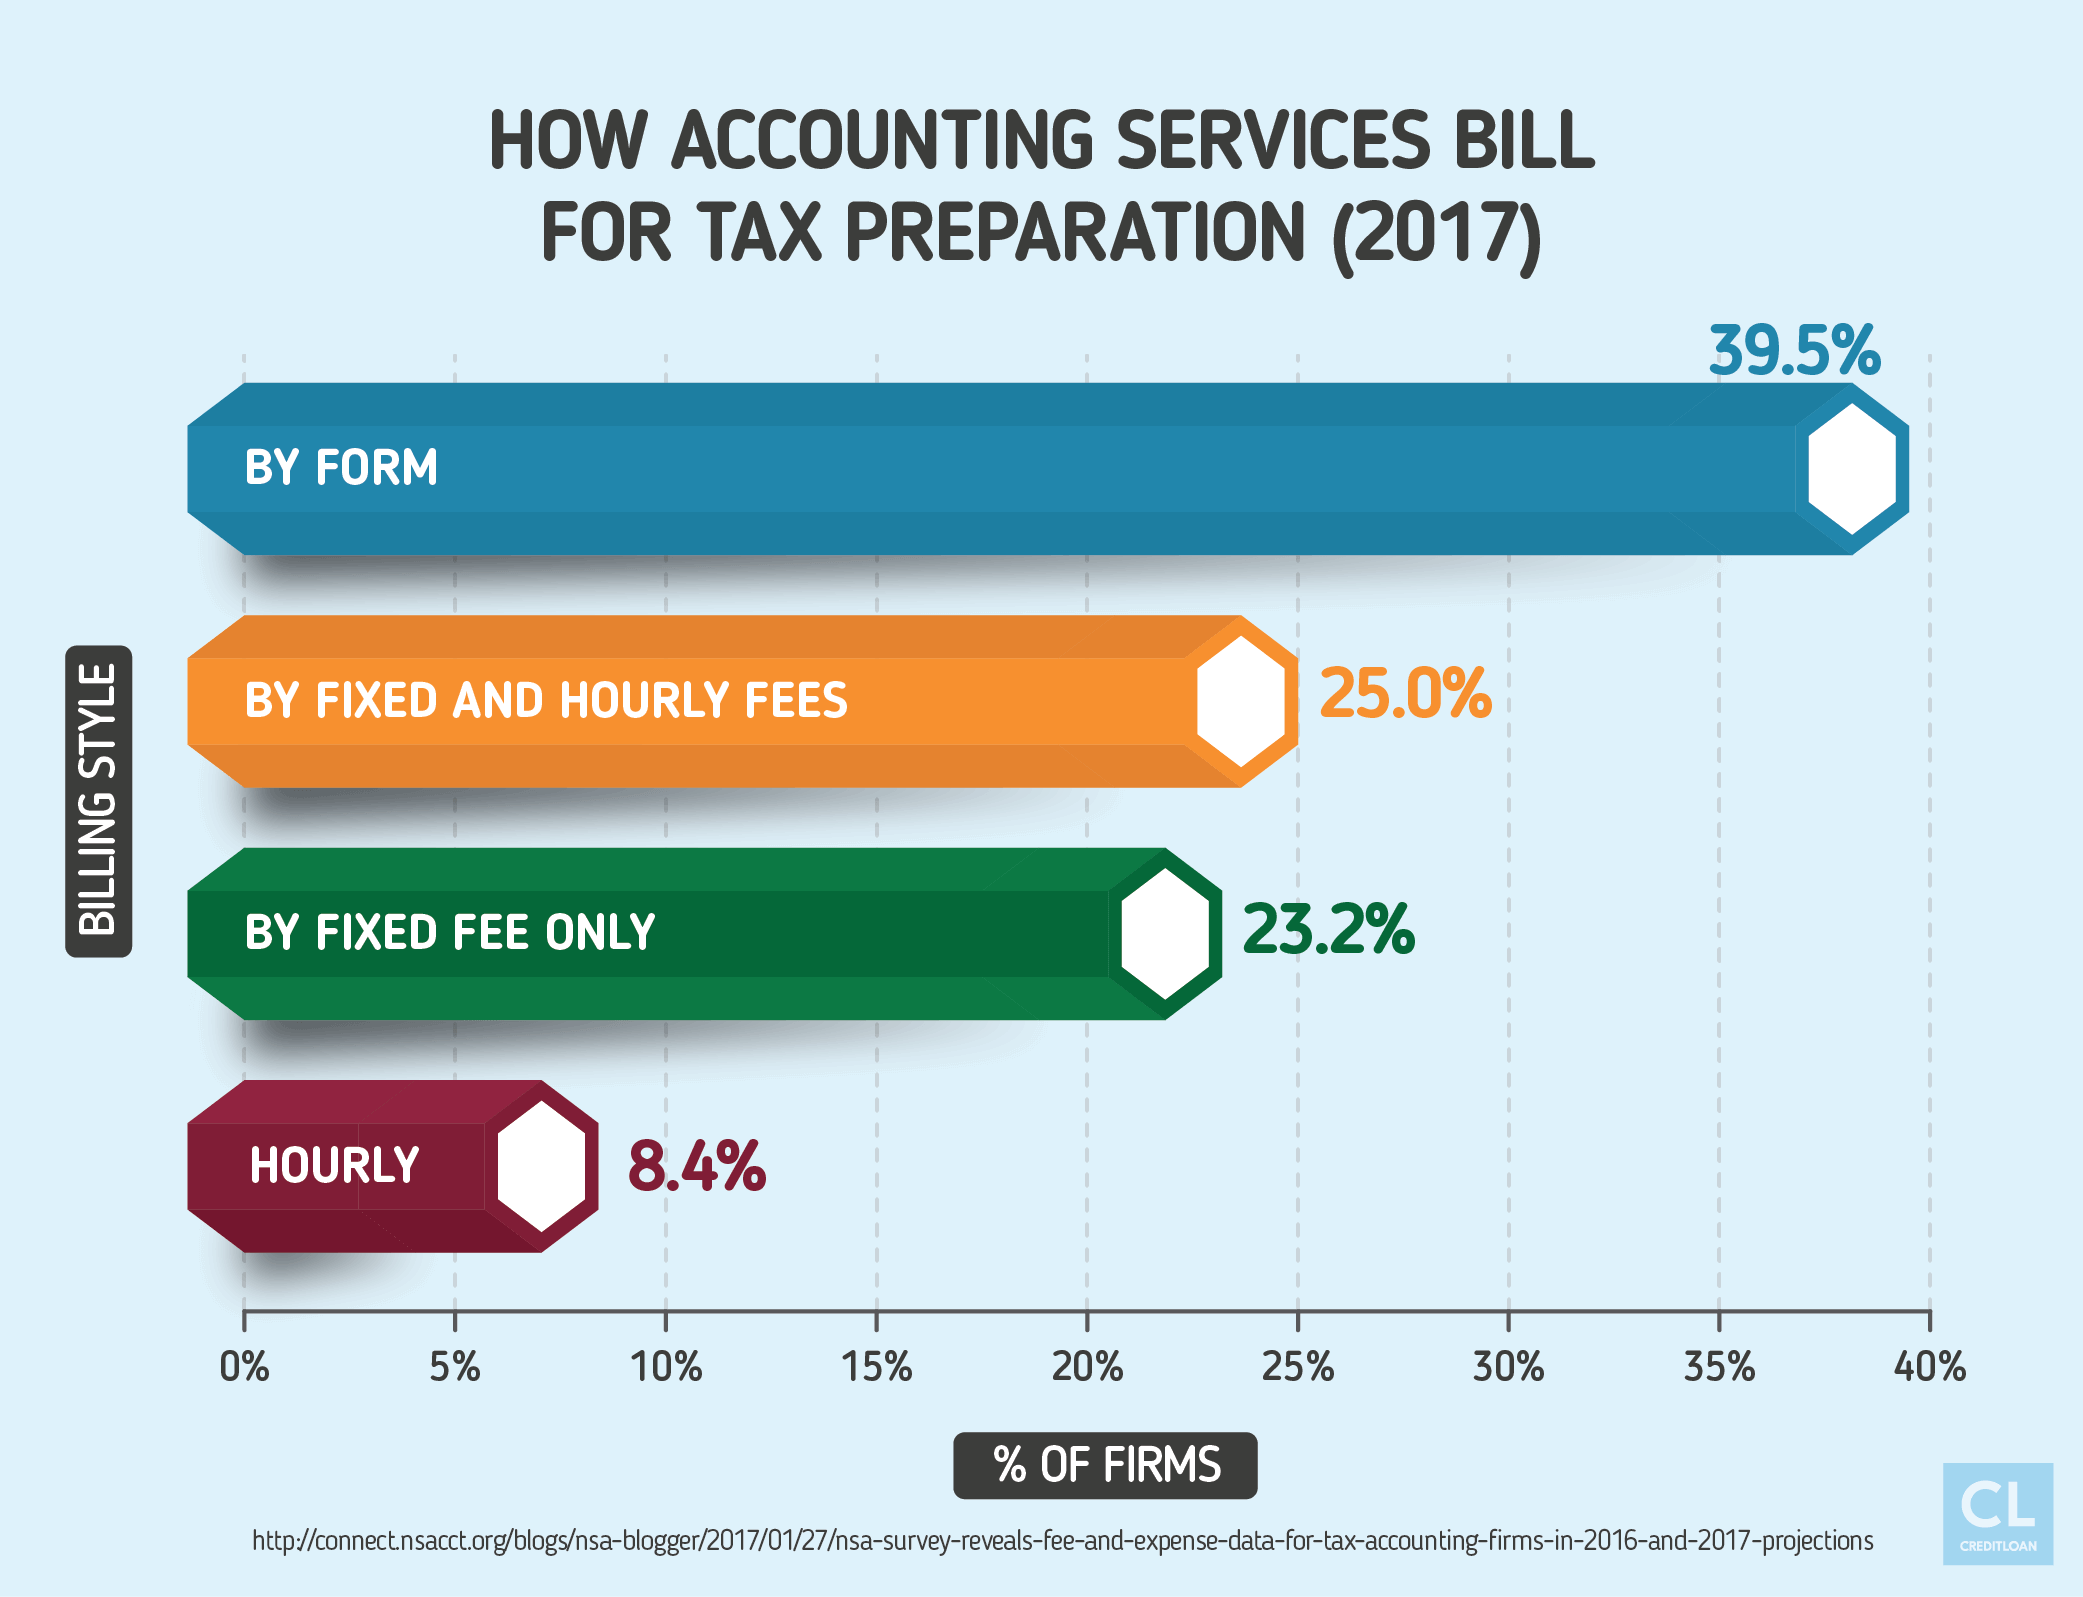 How Accounting Services Bill for Tax Preparation (2017)